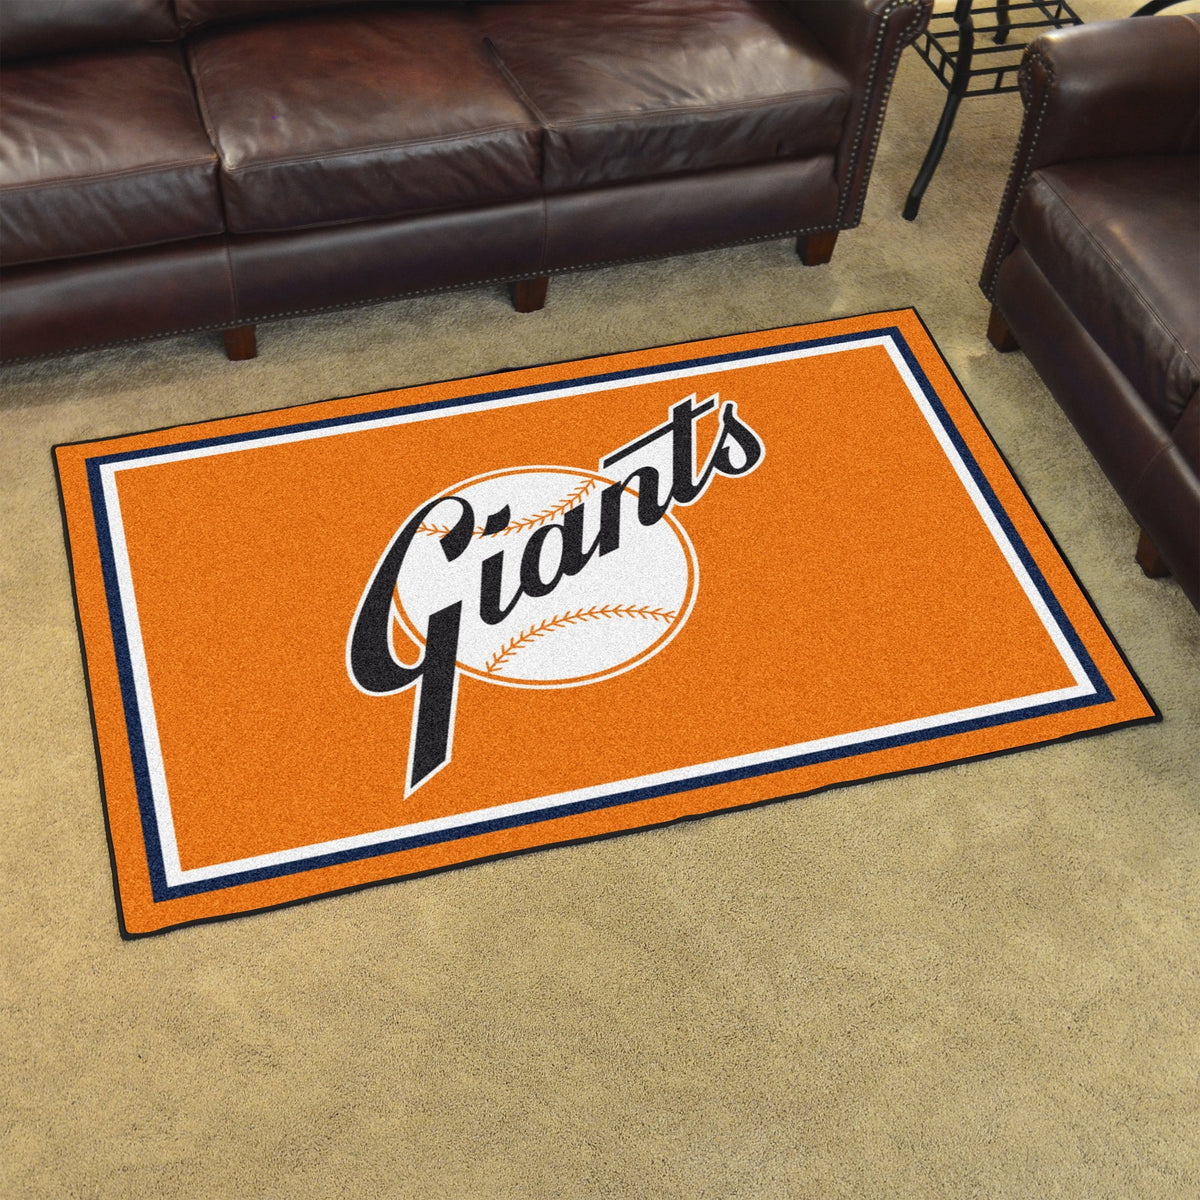 MLB Retro - 4' x 6' Rug MLB Retro Mats, Plush Rugs, 4x6 Rug, MLB, Home Fan Mats New York Giants